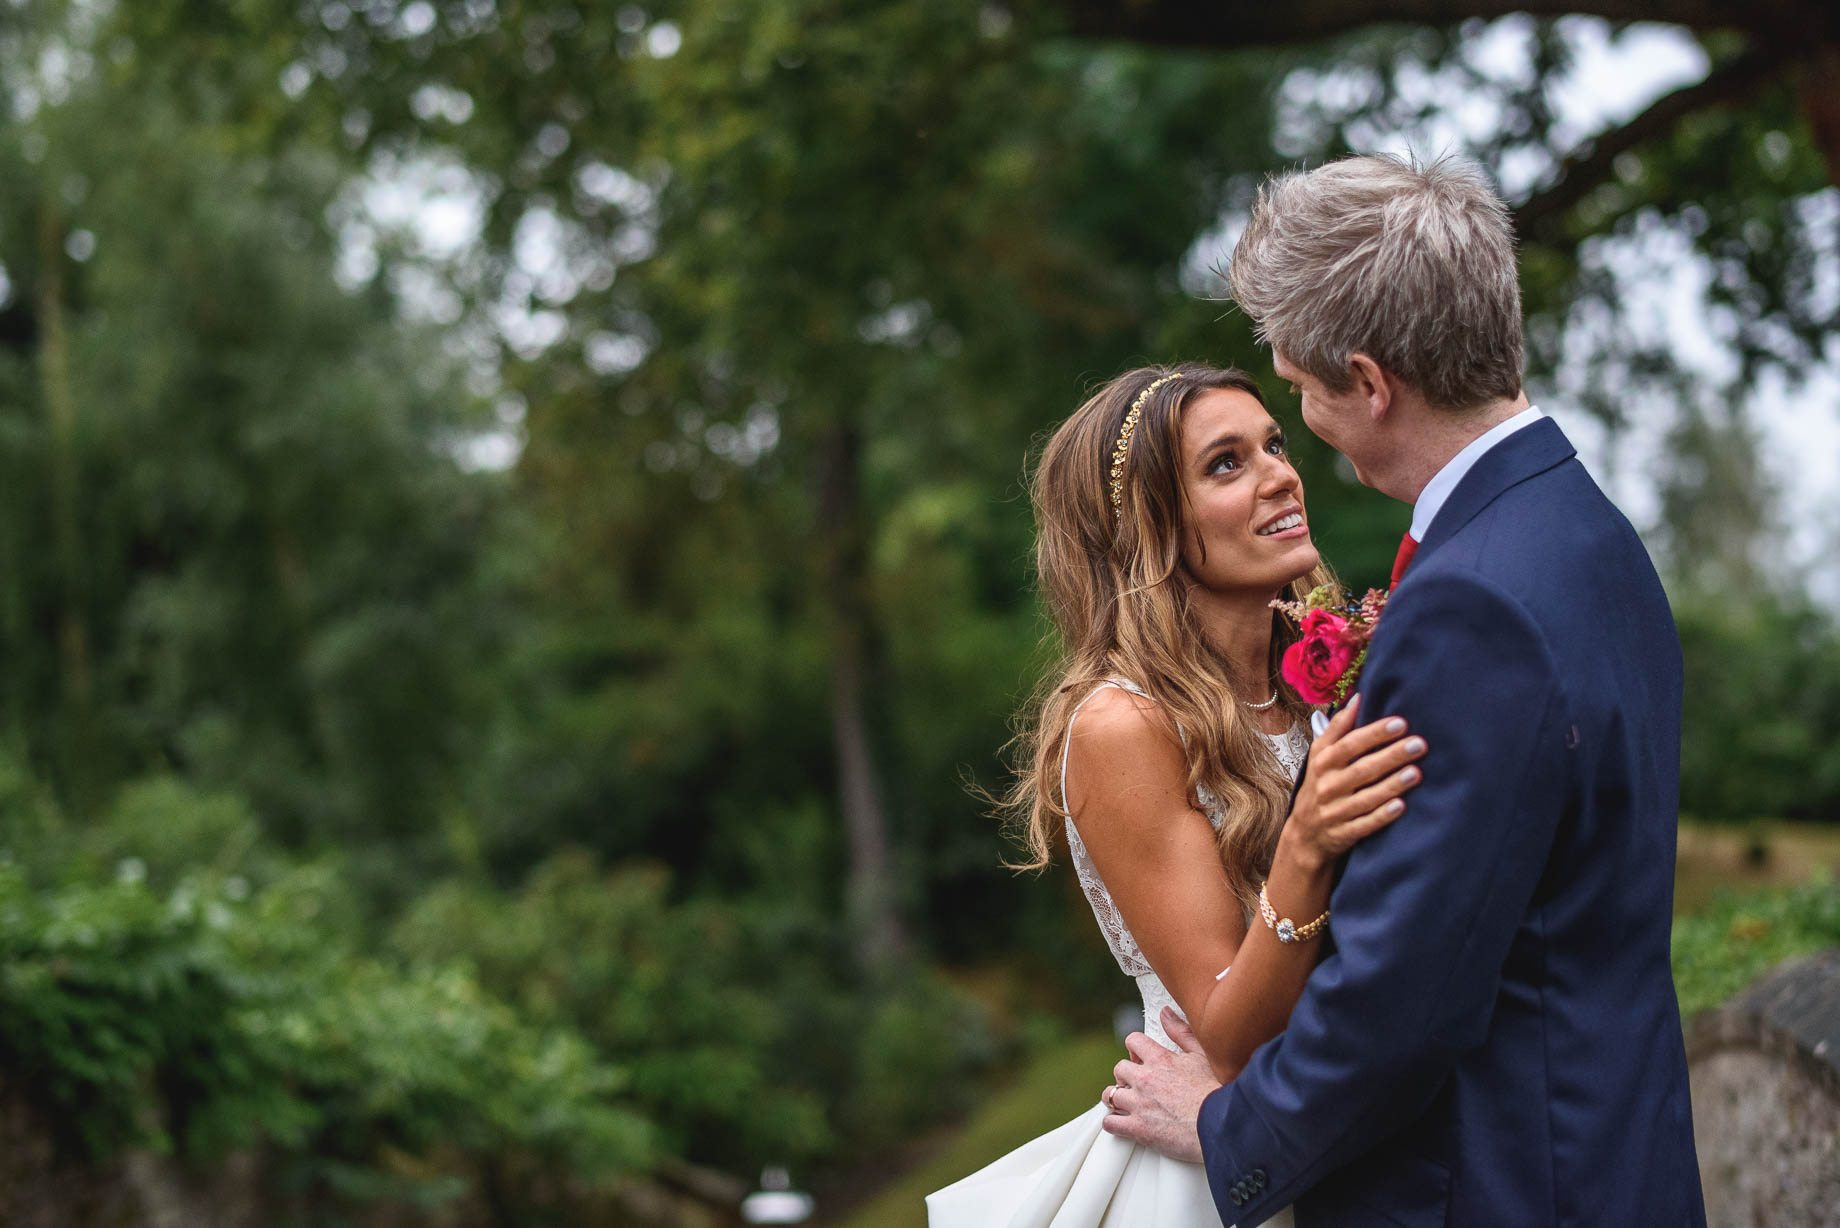 surrey-wedding-photography-guy-collier-photography-claire-and-tom-188-of-227